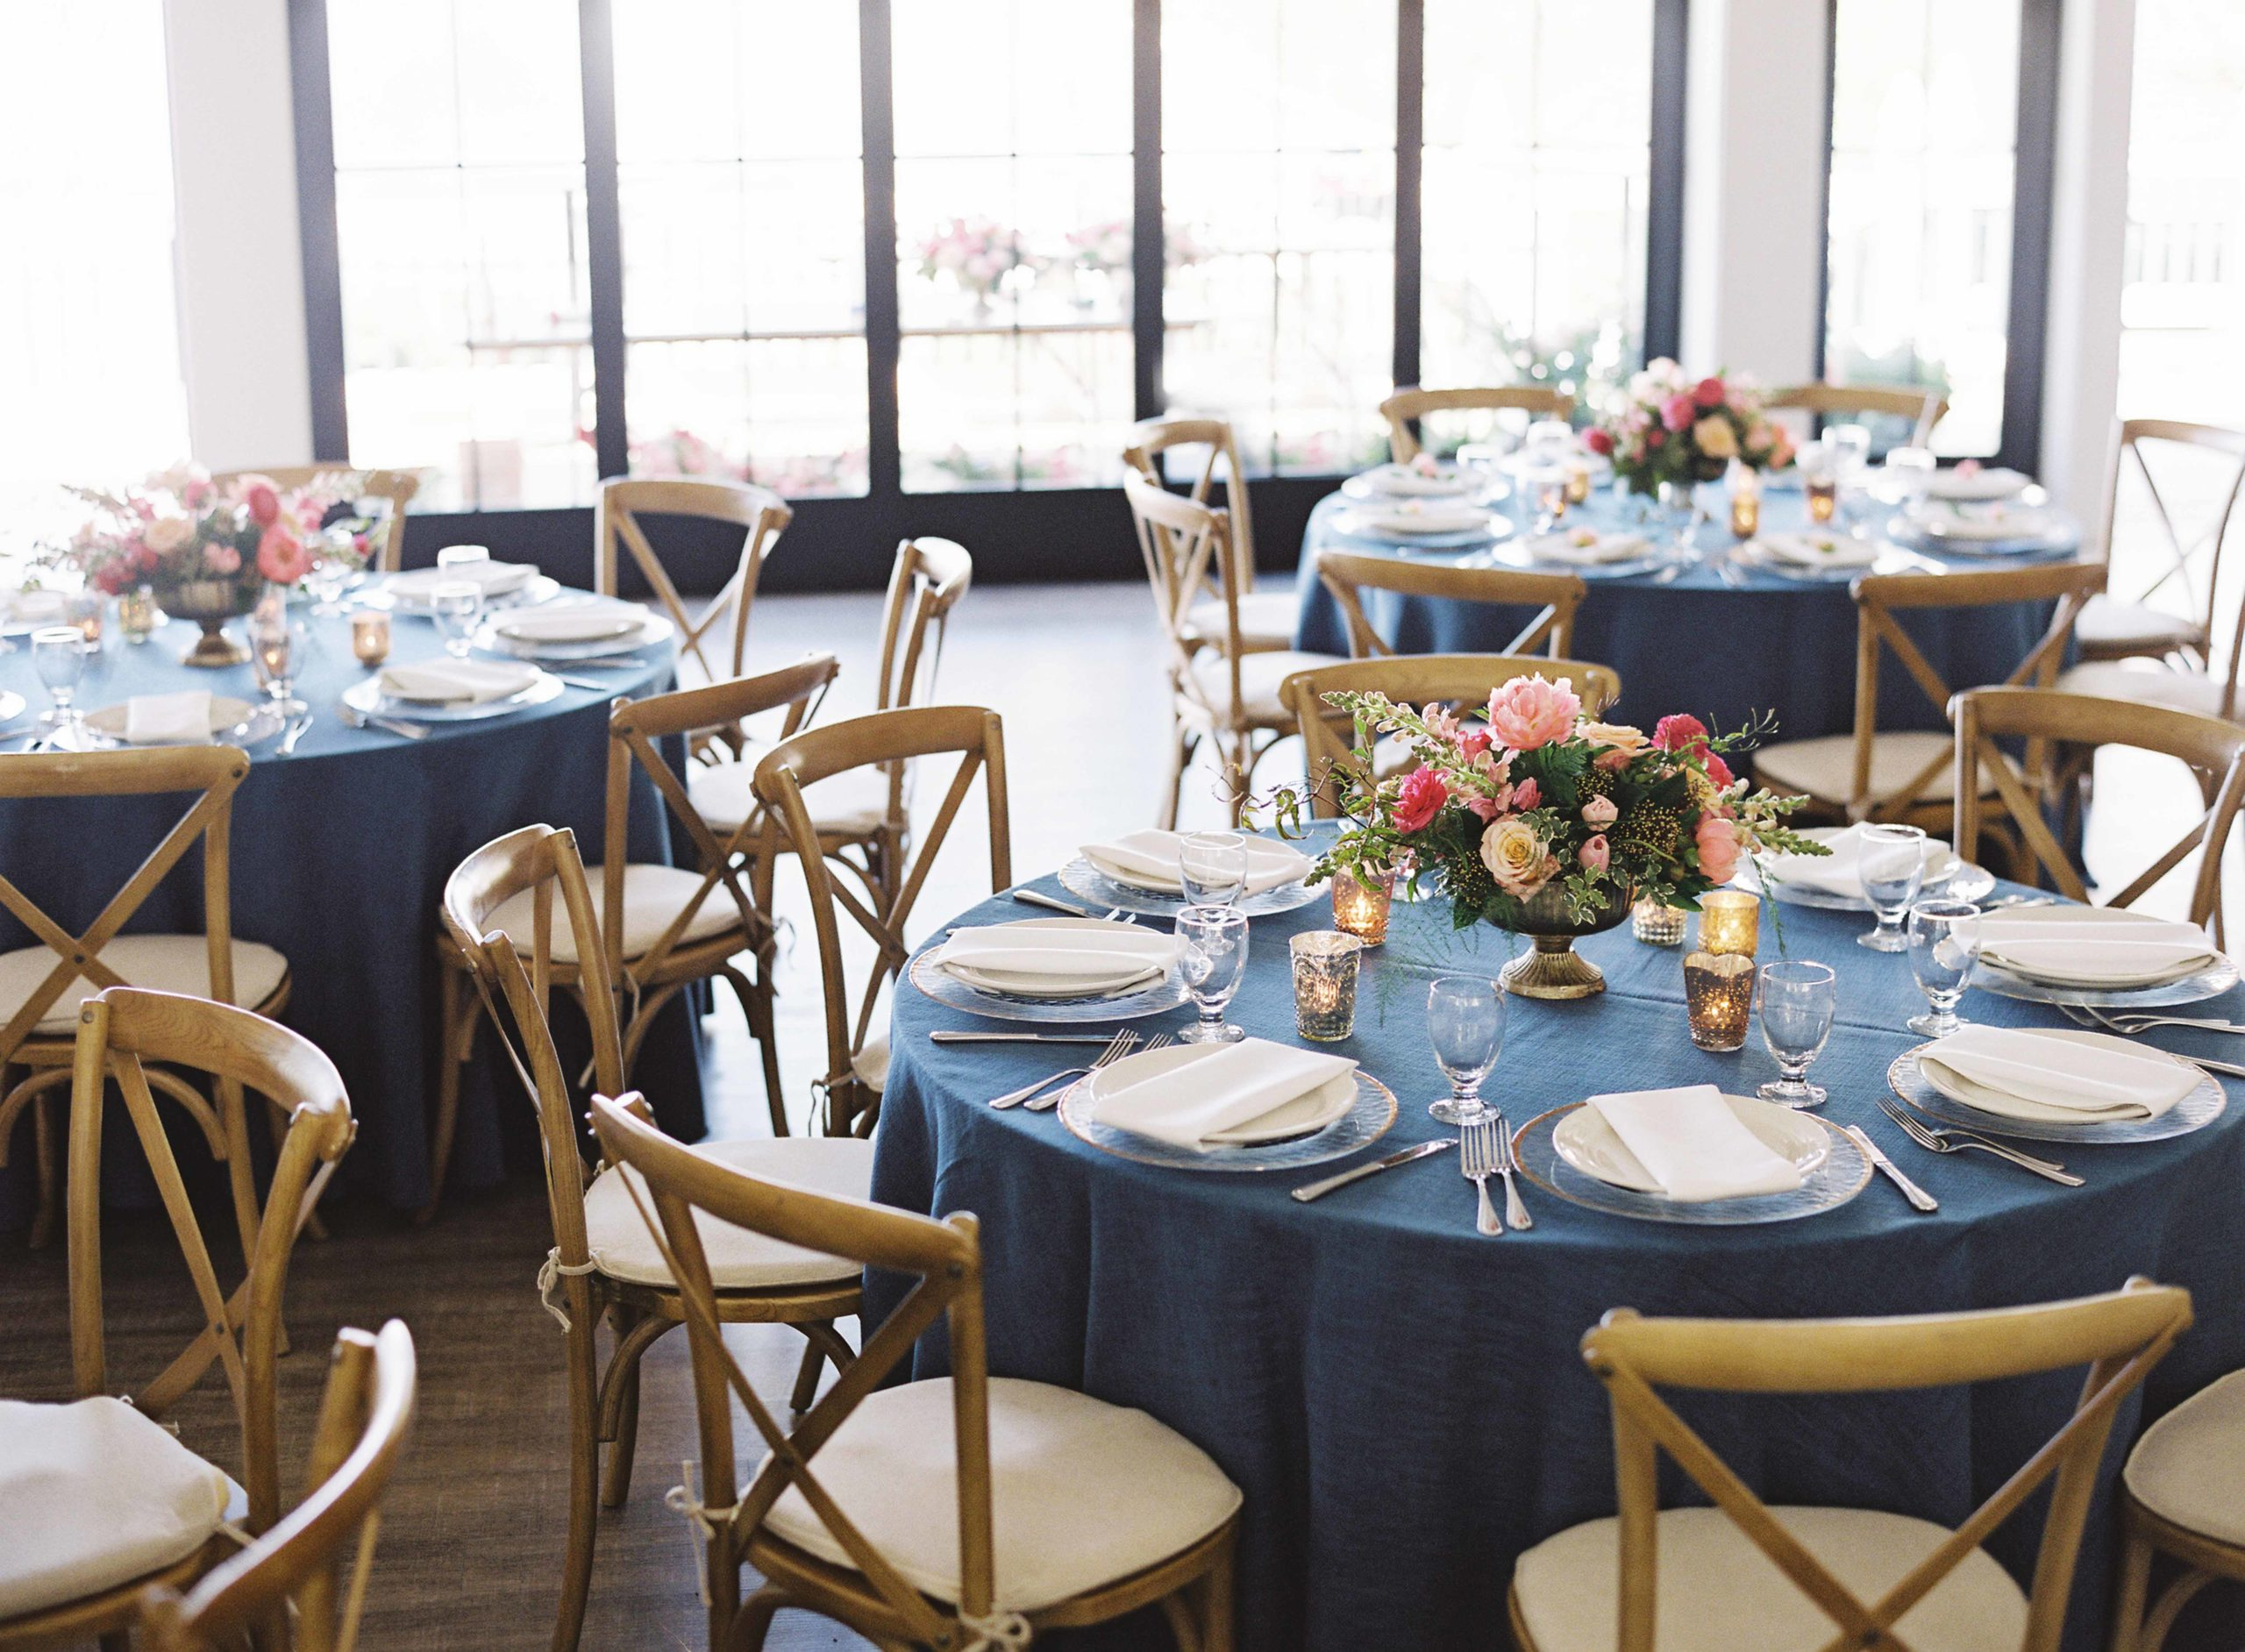 Vineyard chairs around round reception tables with blue linen and pink centerpiece - Seattle Wedding Flowers by Flora Nova Design; Hot pink and peach wedding at Roche Harbor Resort